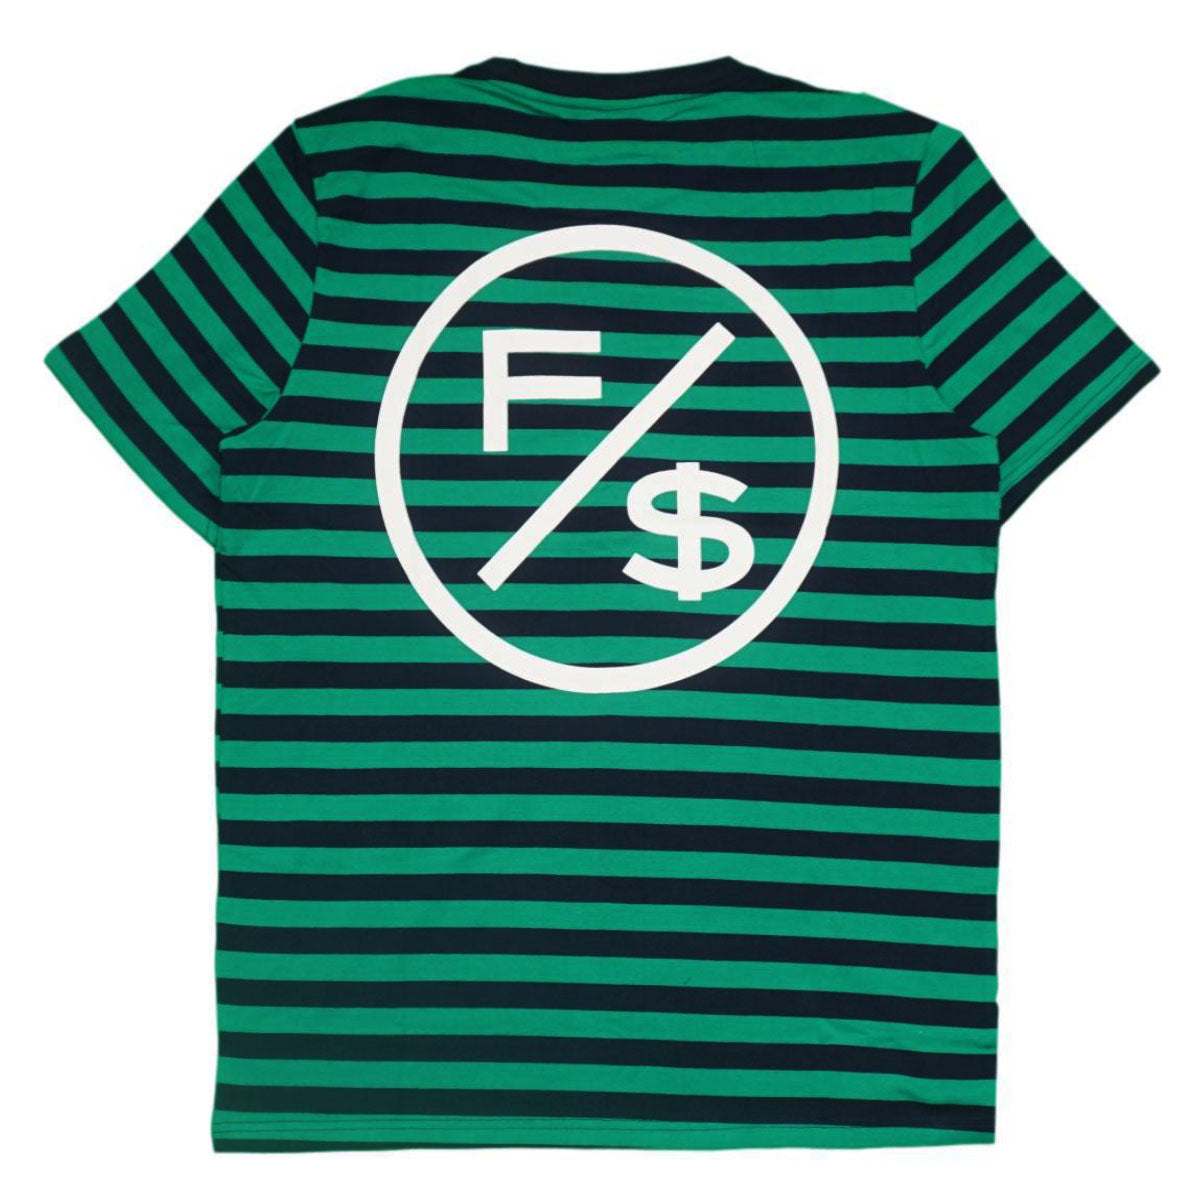 Signed Stripe Shirt (Green) /D10